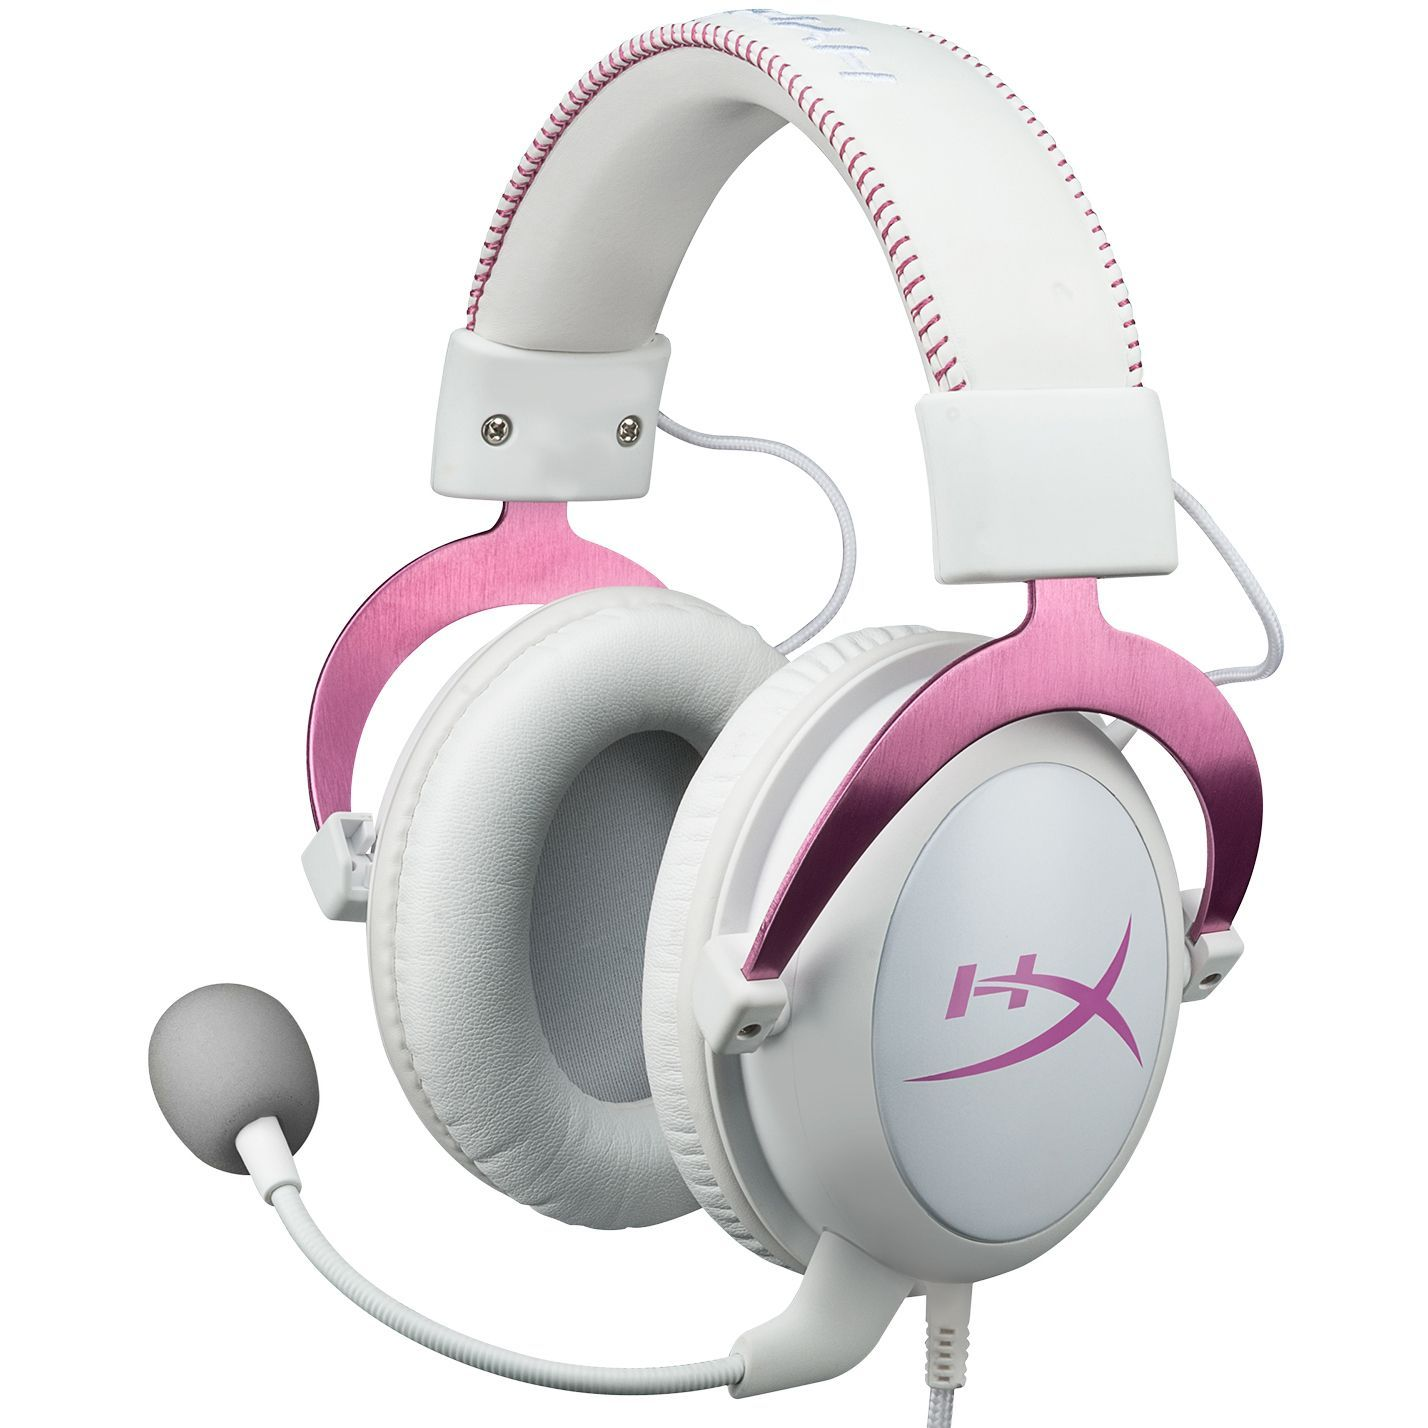 Kind of lining can you expect on the kingston hyperx cloud ii headset - Kingston Hyperx Cloud Ii Headset By Kingston